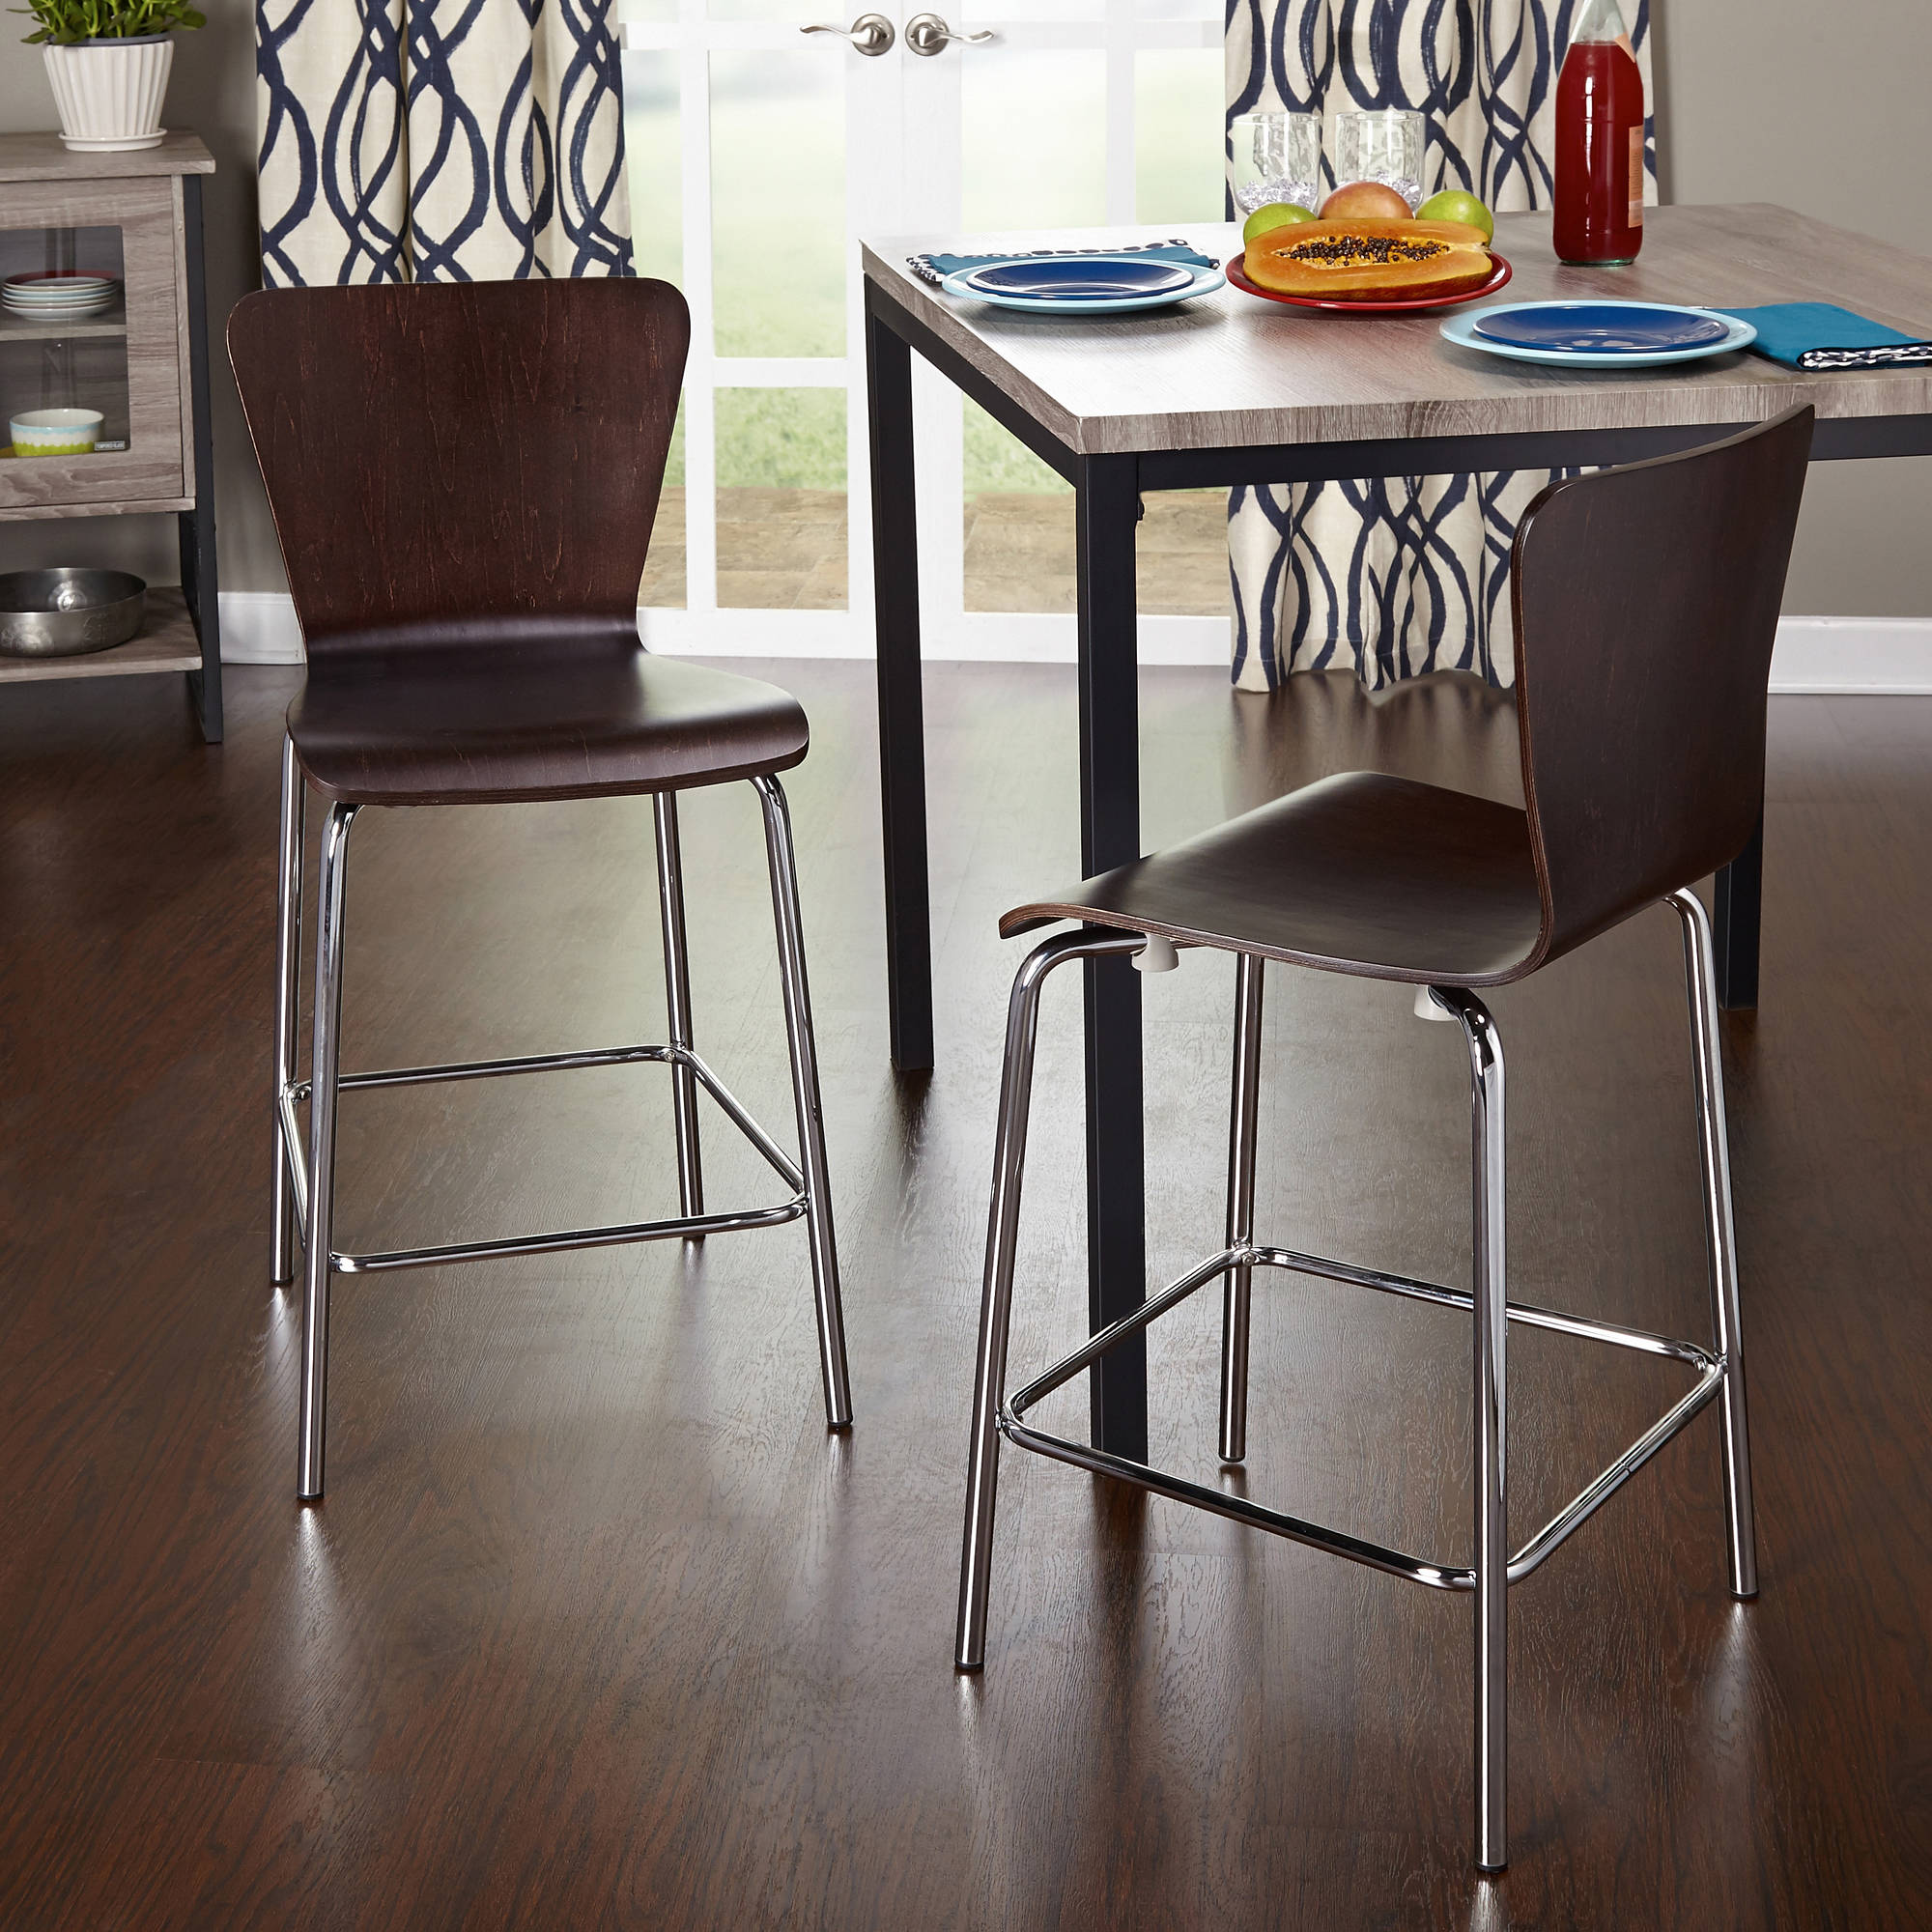 "Pisa Counter Height Stool, 24"", Set of 2, Multiple Colors"